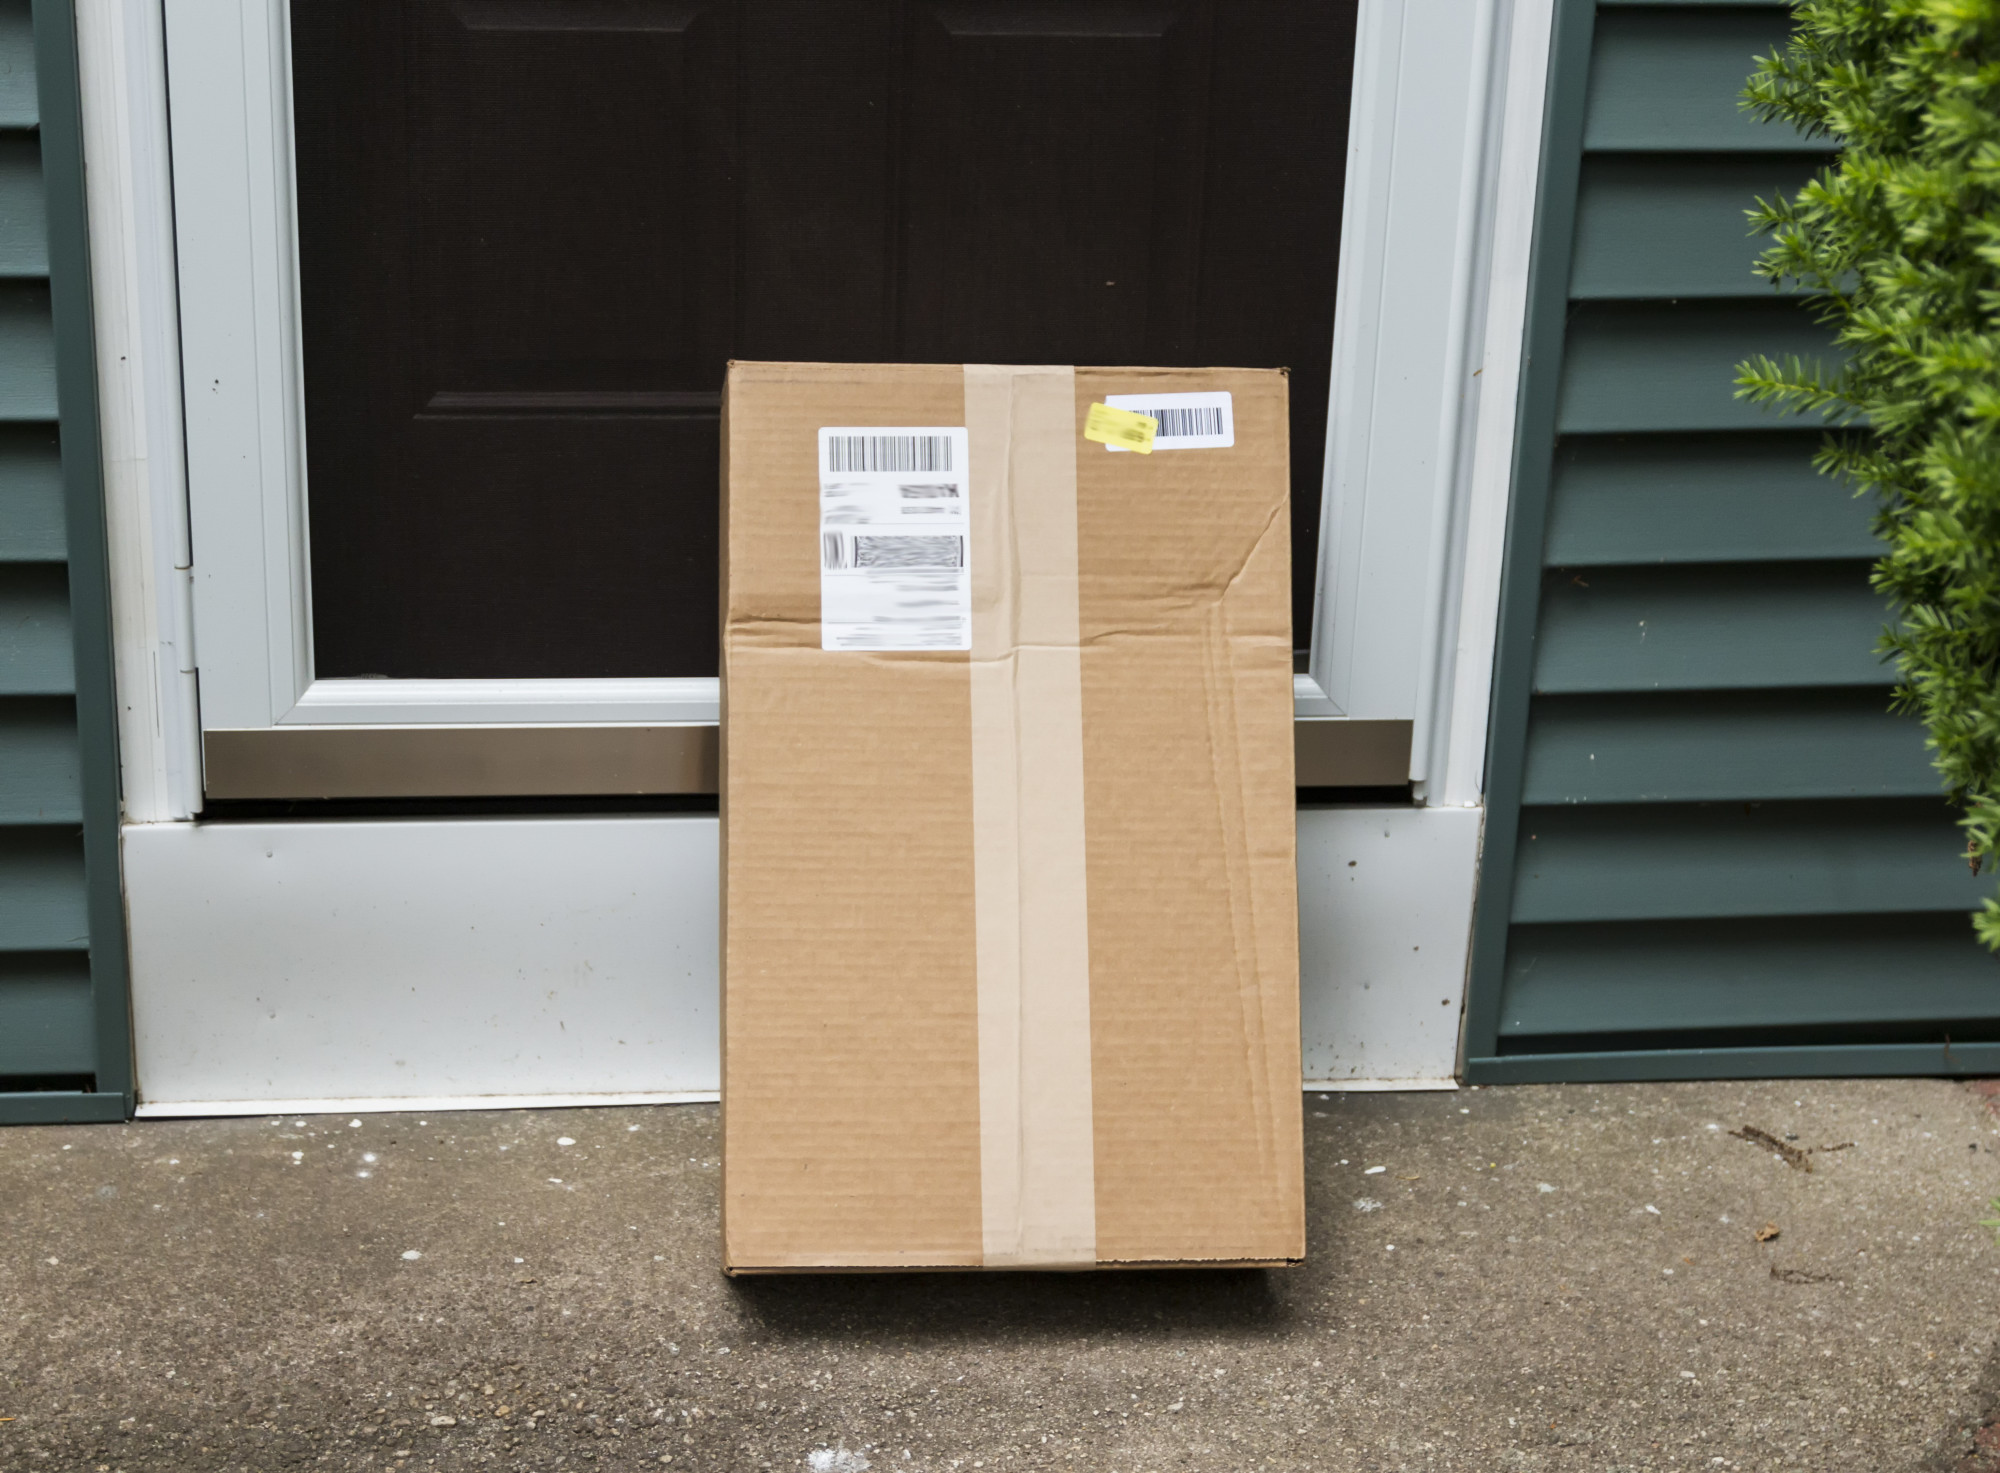 Porch Pirates No More: How to Protect Your Packages